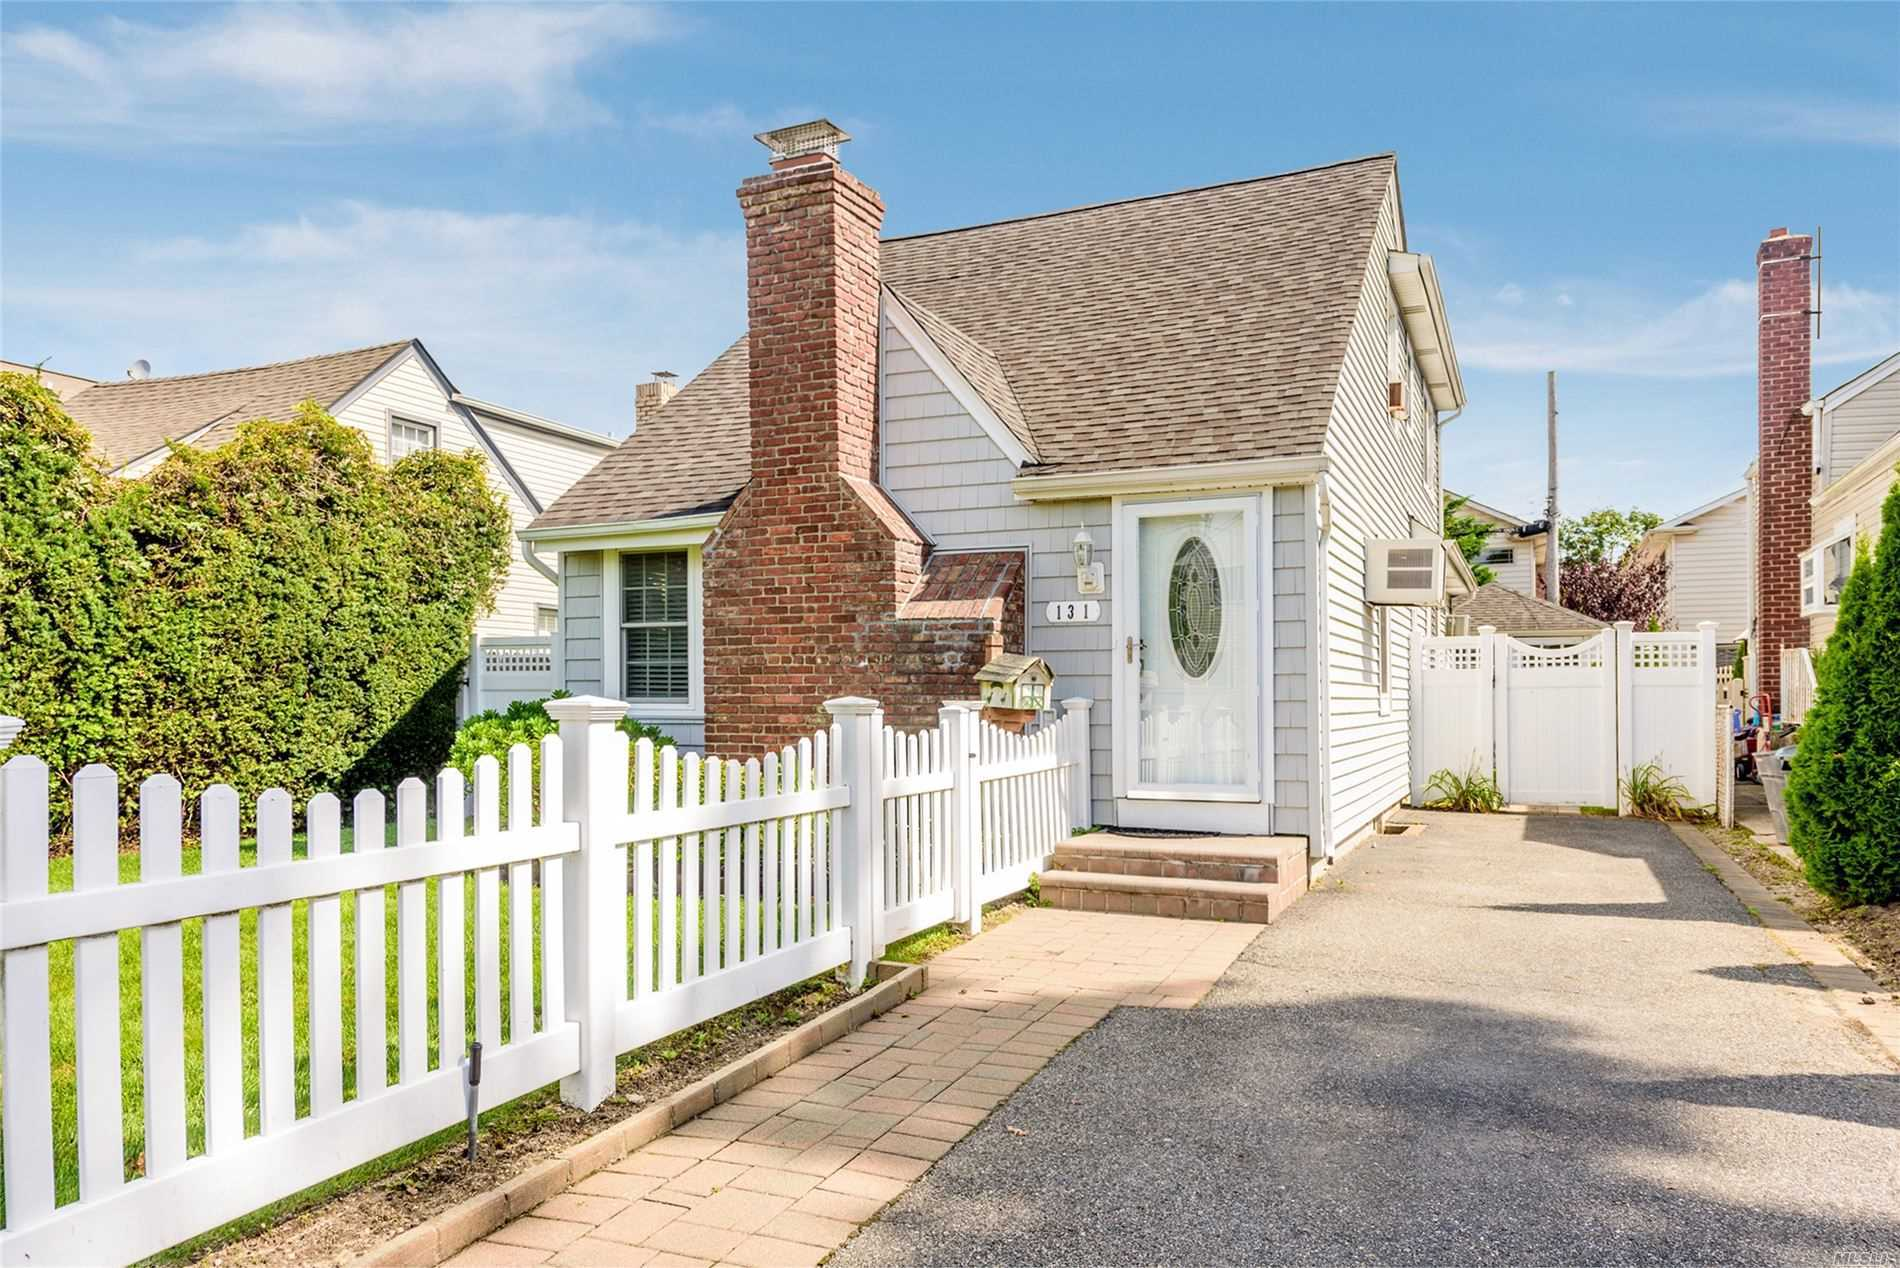 131 Beach Dr - Merrick, New York